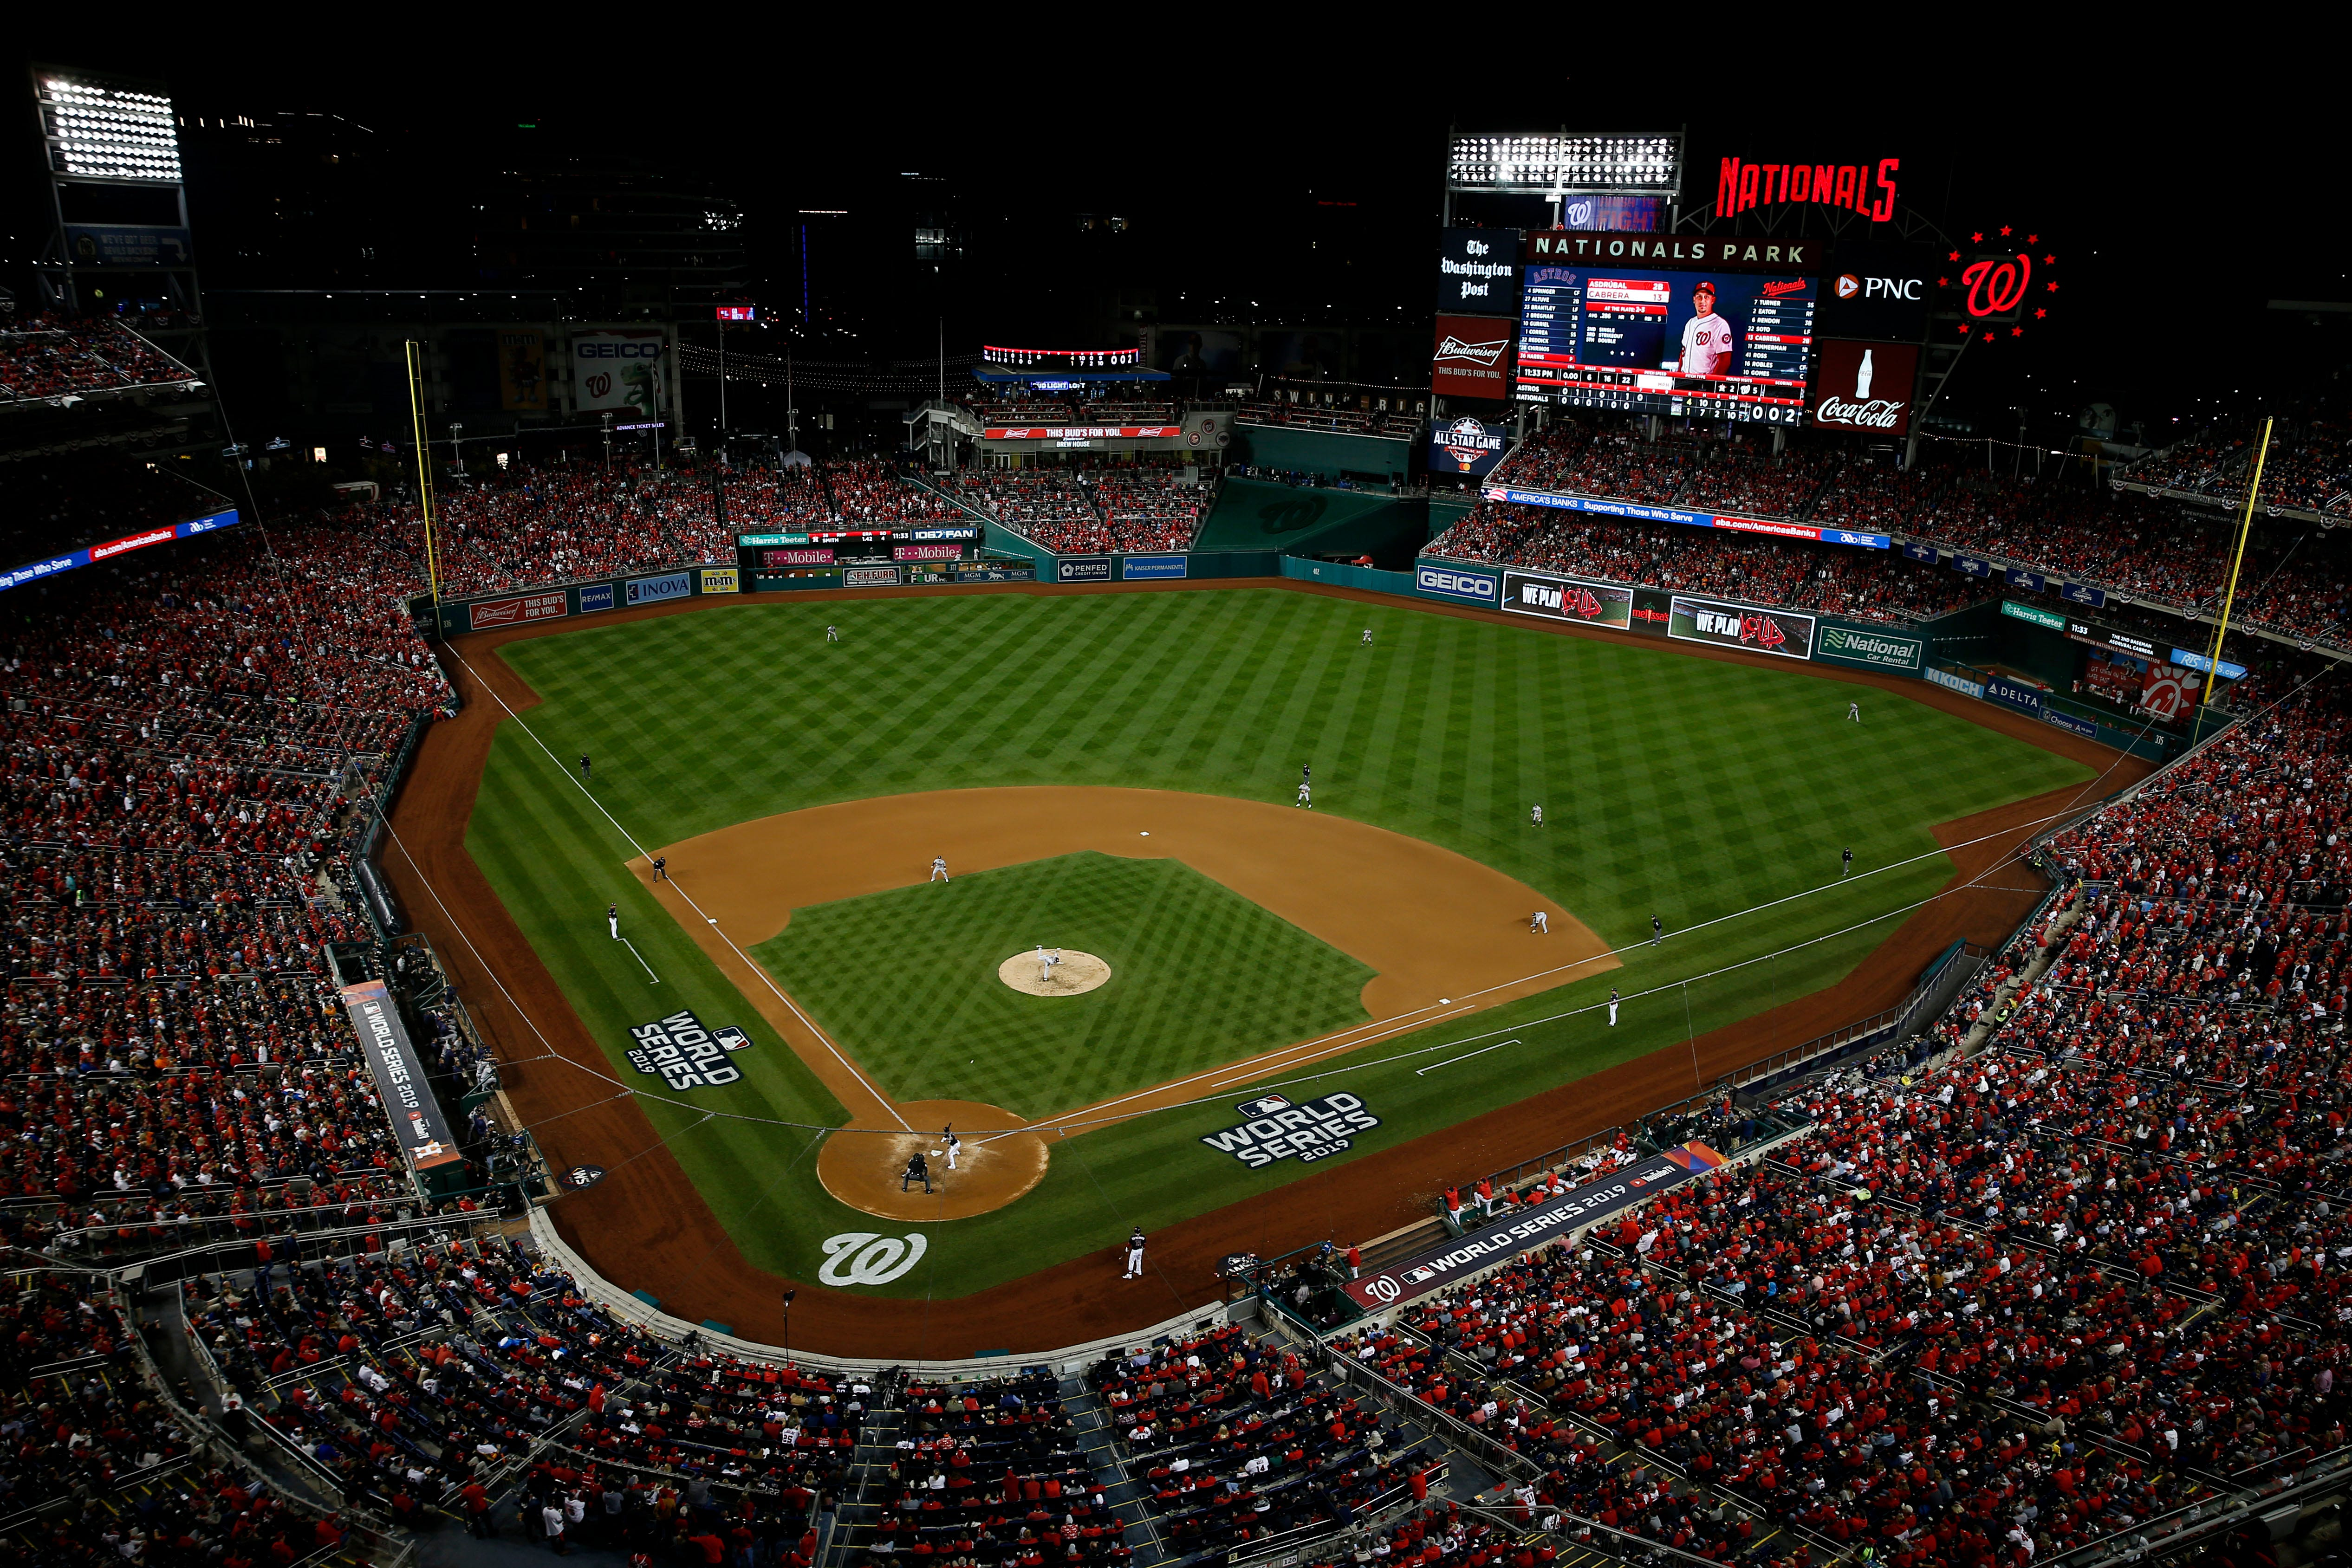 Yankees-Nationals, Giants-Dodgers to open coronavirus-abbreviated 2020 MLB season